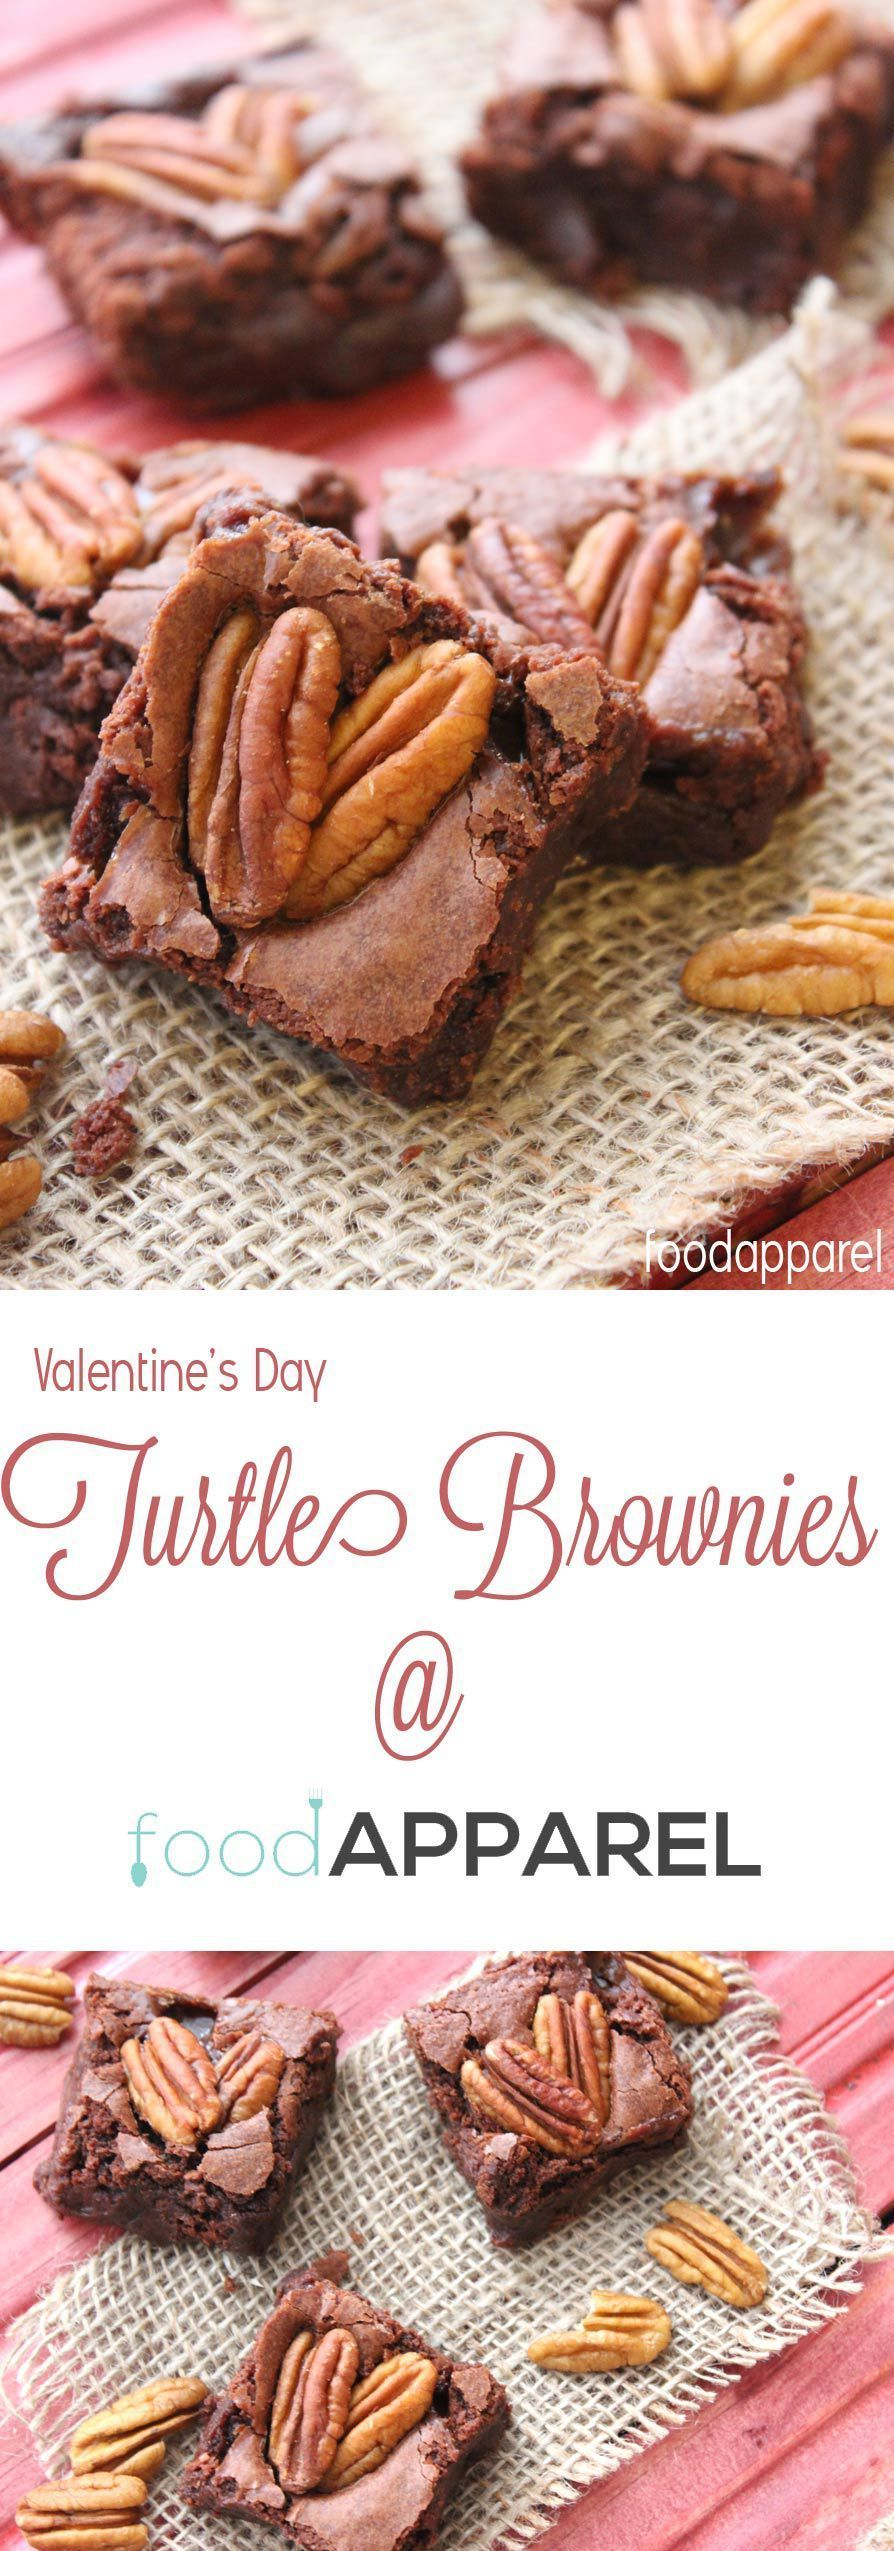 Valentine's Day Heart Turtle Brownies (Caramel & Pecan) #turtlebrownies These Valentine's Day Heart Turtle Brownies are sure to win their way into someone's heart! Caramely, chocolately and delicious! @foodapparel #turtlebrownies Valentine's Day Heart Turtle Brownies (Caramel & Pecan) #turtlebrownies These Valentine's Day Heart Turtle Brownies are sure to win their way into someone's heart! Caramely, chocolately and delicious! @foodapparel #turtlebrownies